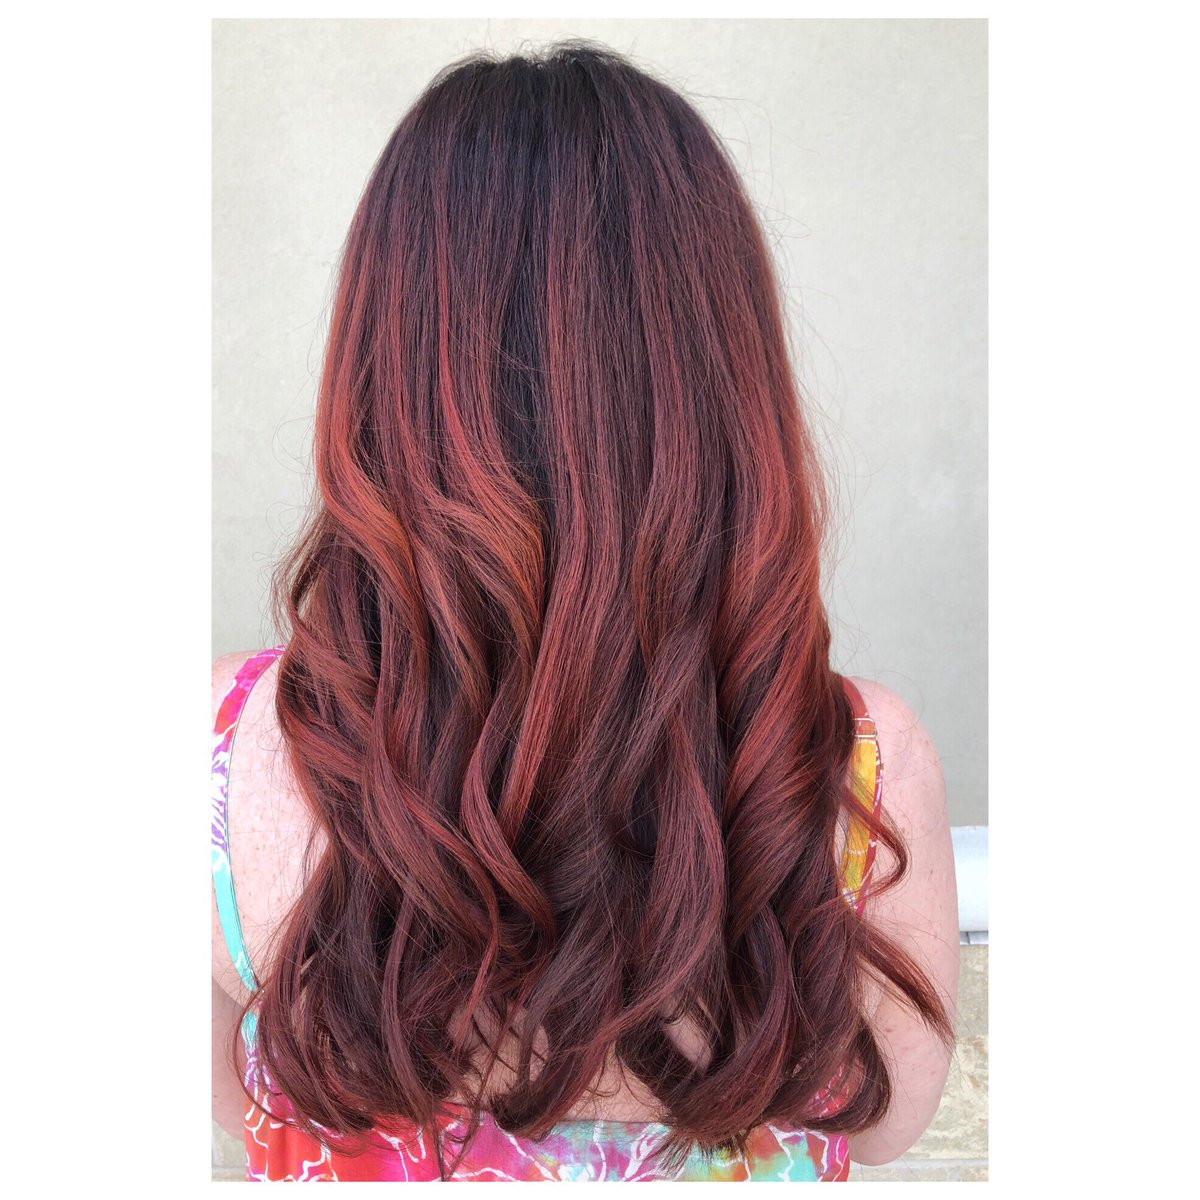 Samuel Cole Salon On Twitter If Cherry Coke Were A Hair Color